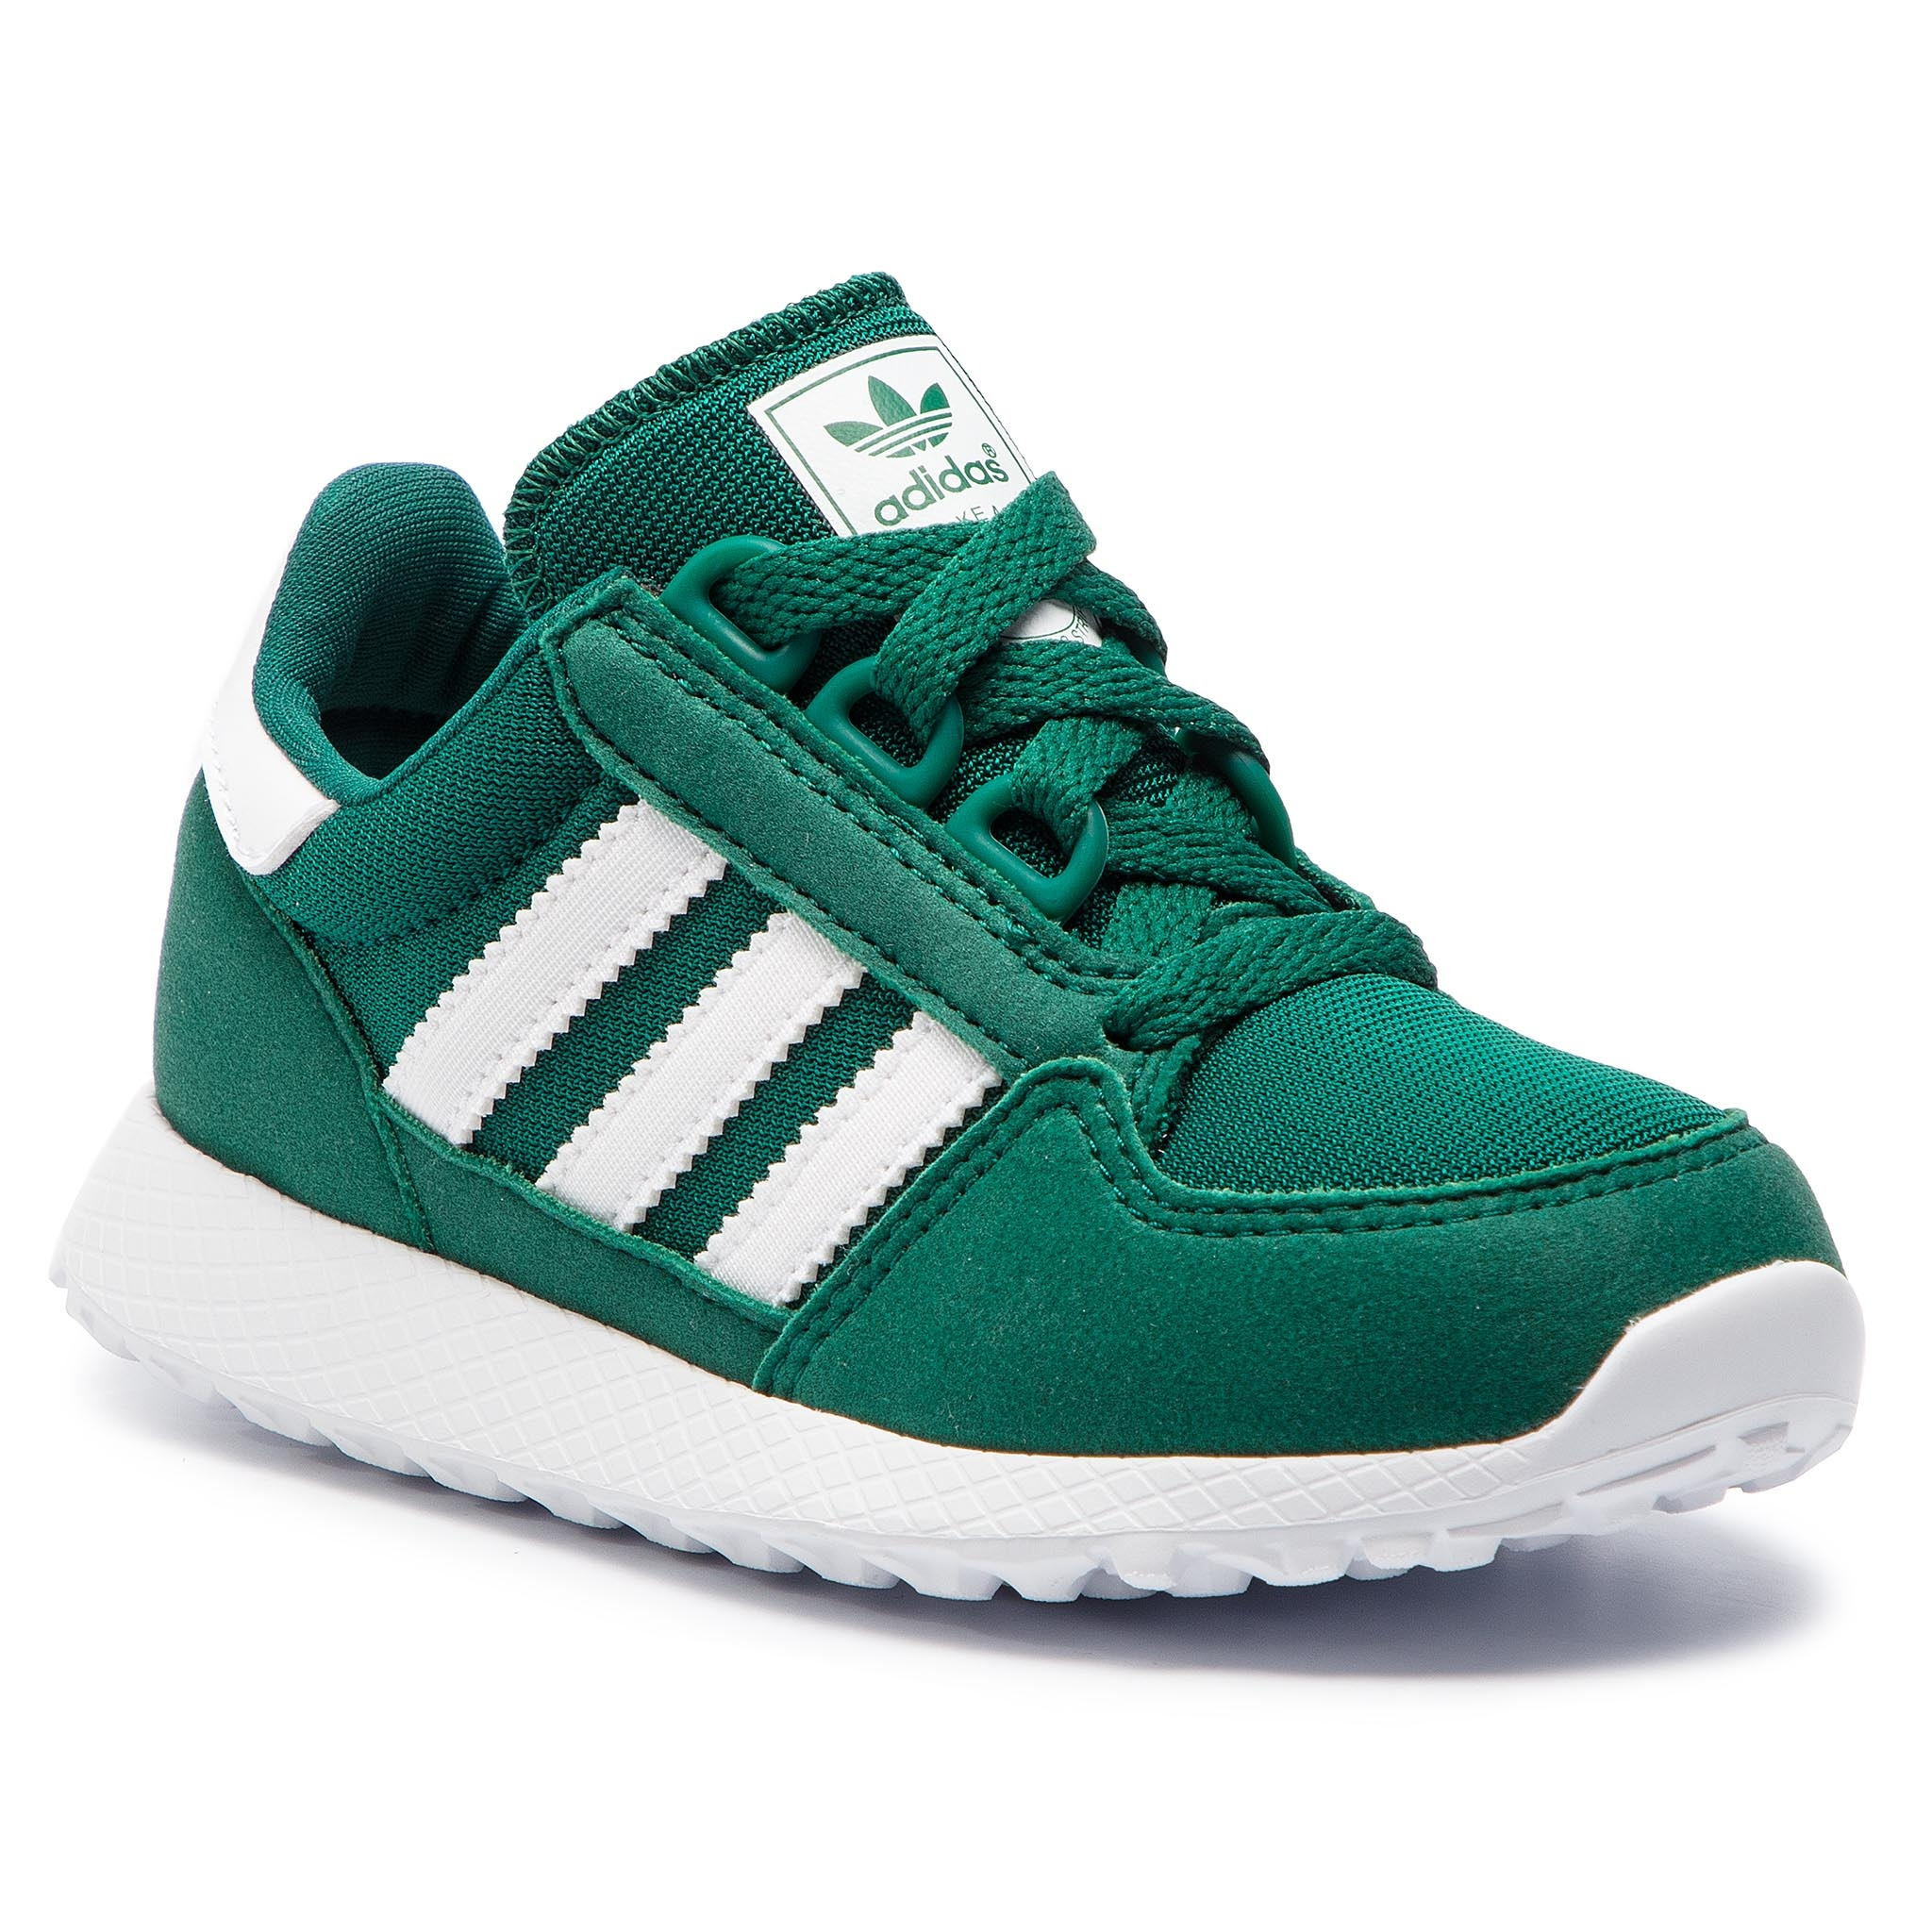 3e5a7bc53d4da Shoes adidas - Swift Run C CP9435 Ftwwht Crywht Cblack - Laced shoes ...